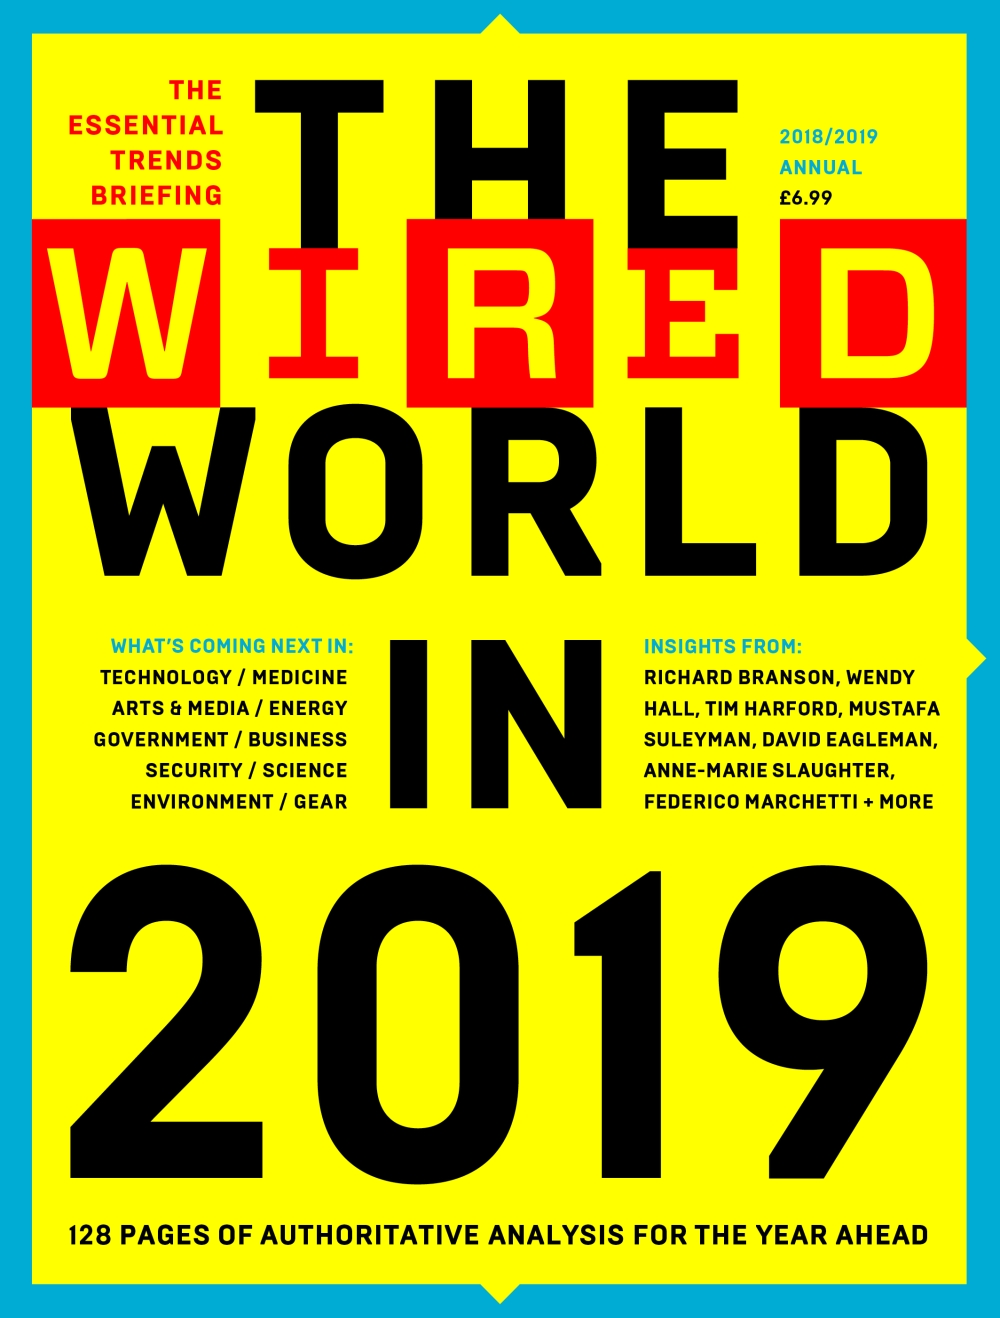 The WIRED World in 2018.